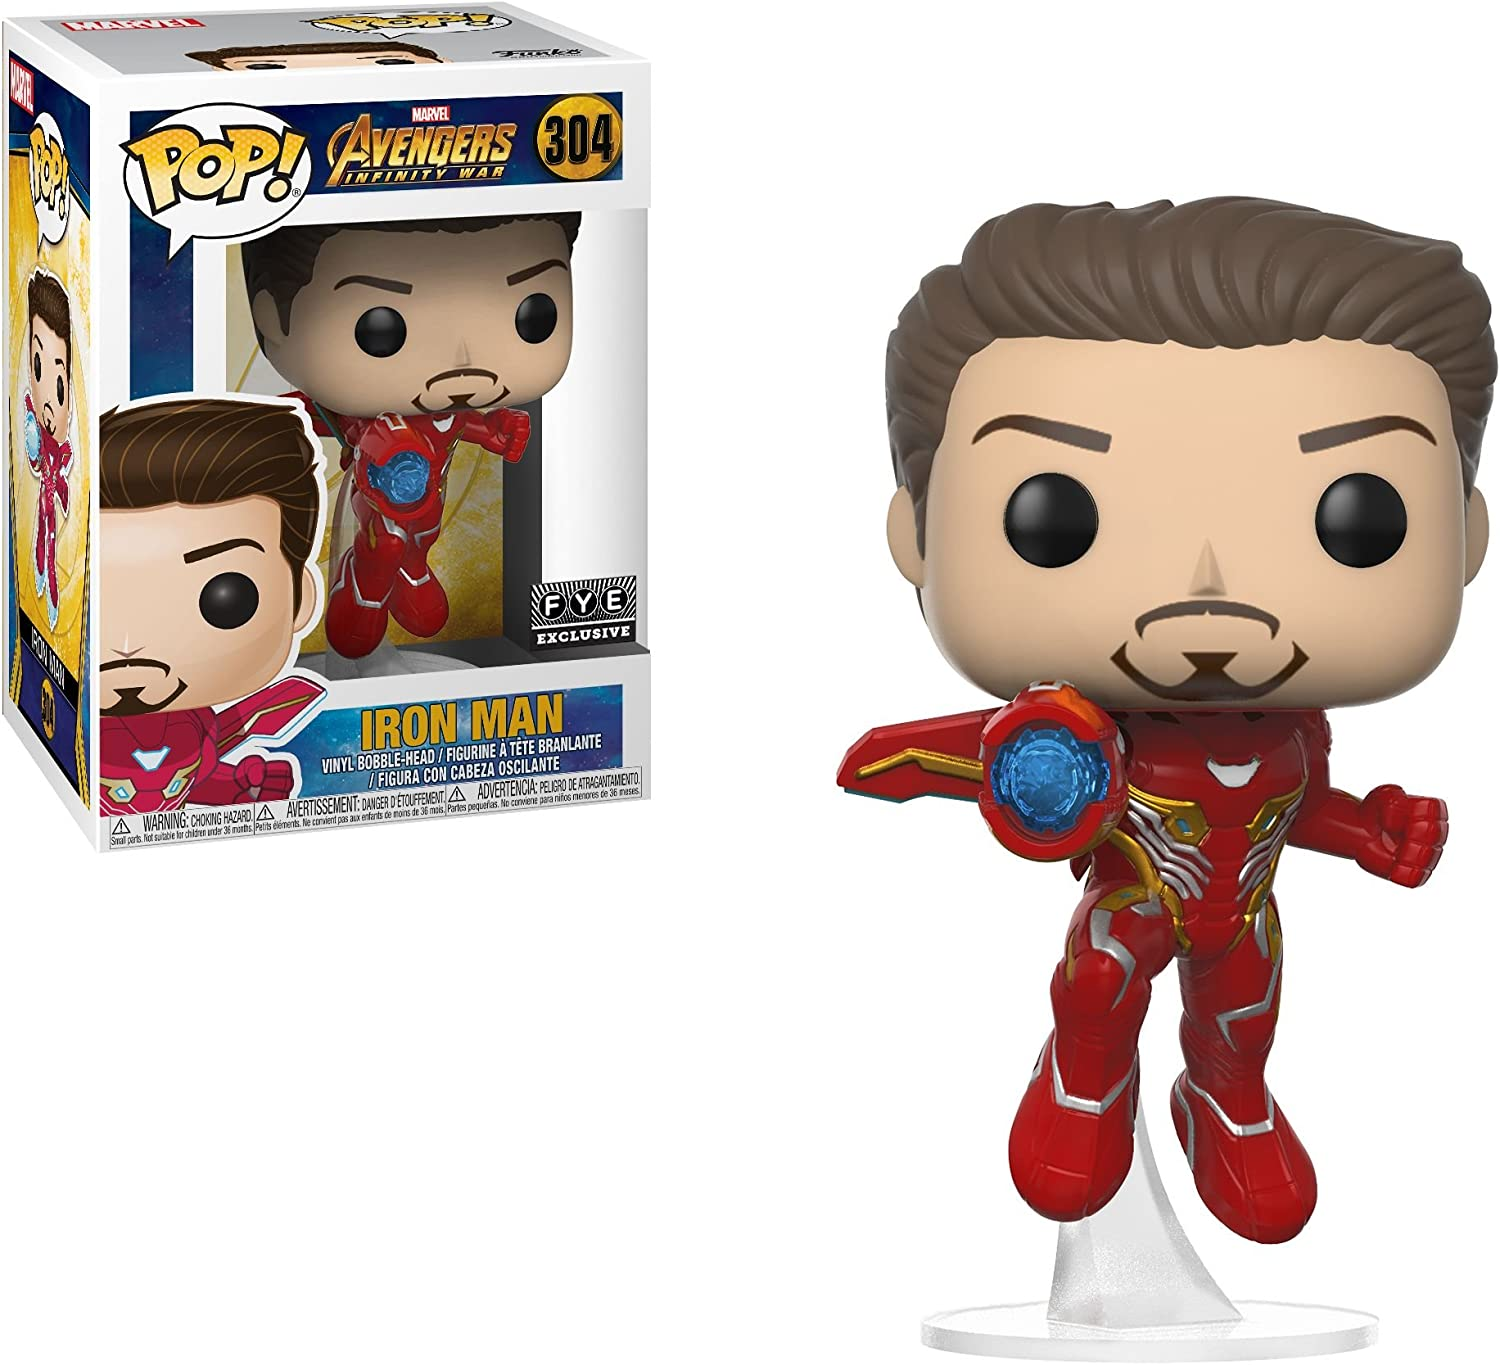 Pop Marvel Avengers Infinity War Vinyl Bobble Head Iron Man Unmasked 304 Fye Exclusive Figures Amazon Canada